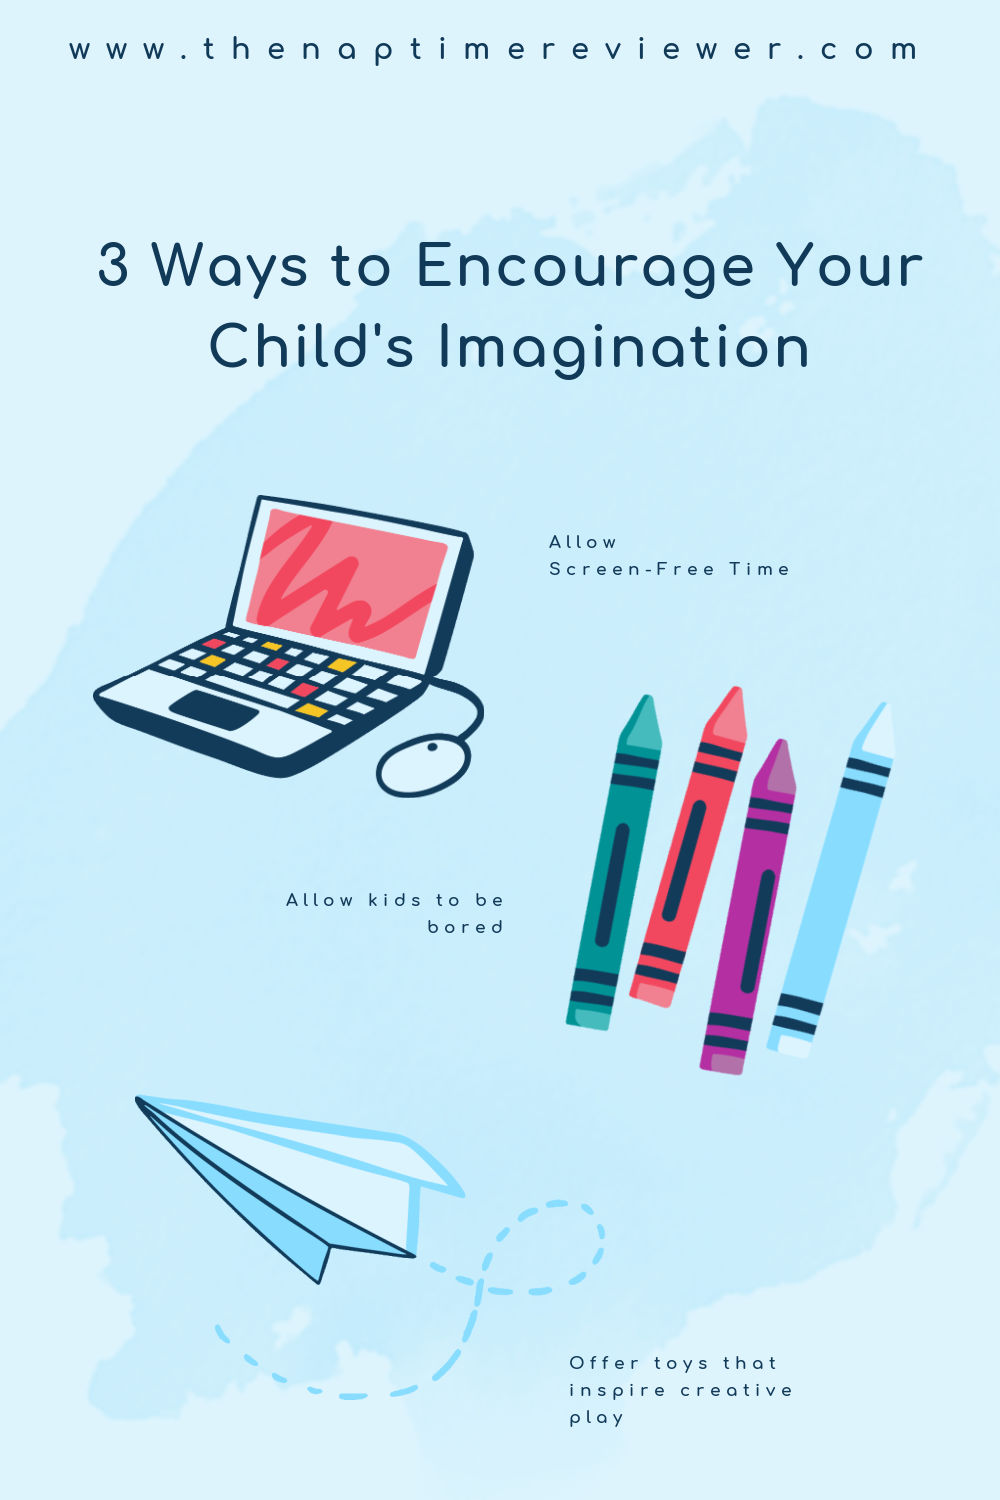 3 Ways to Encourage Your Child's Imagination